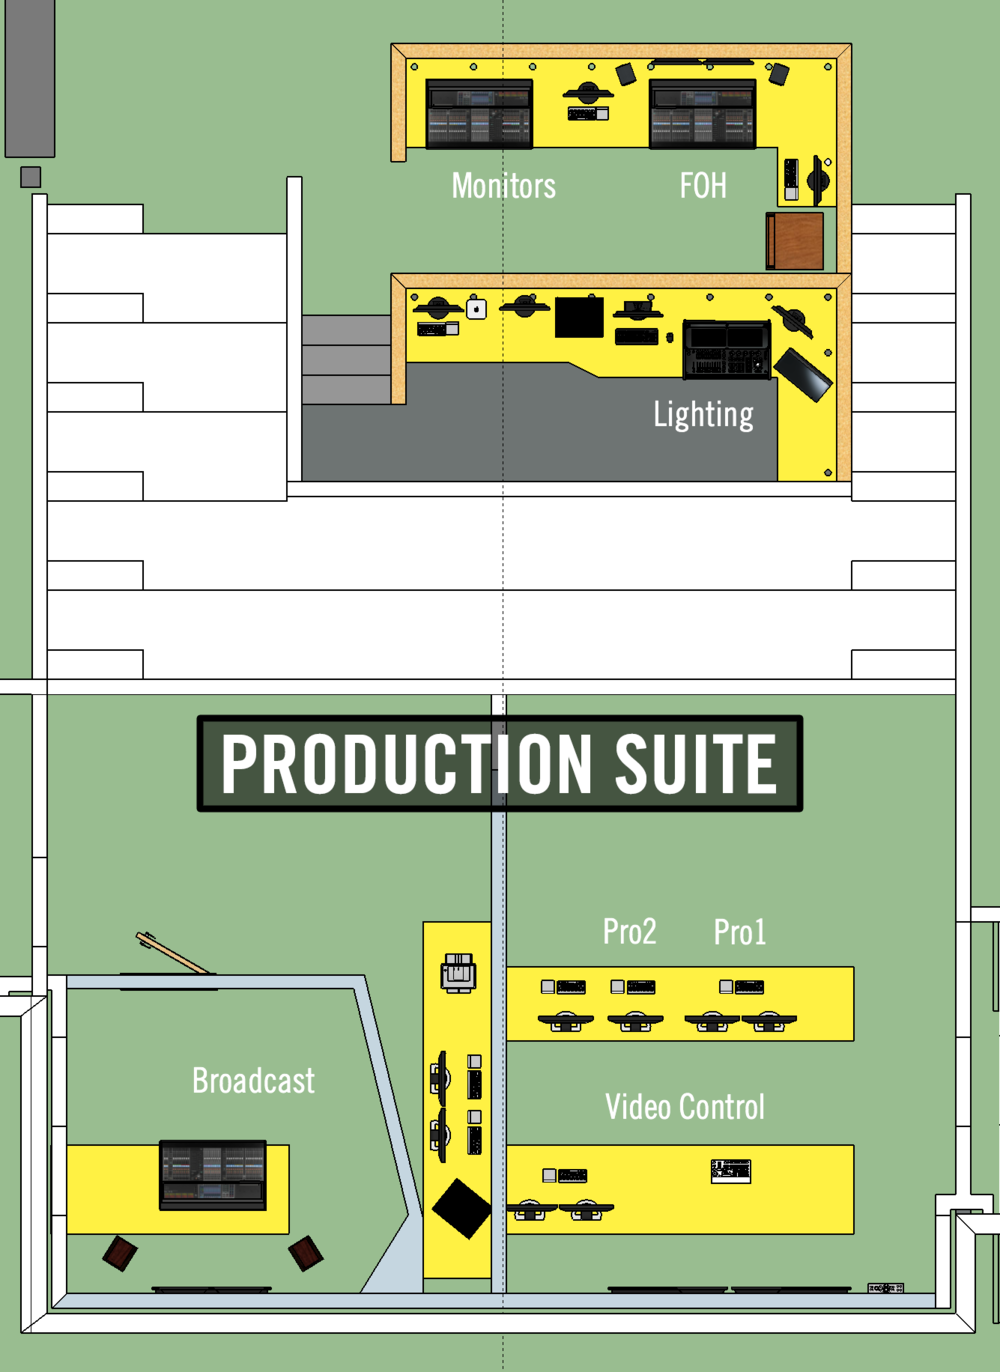 Sandals Production Layout